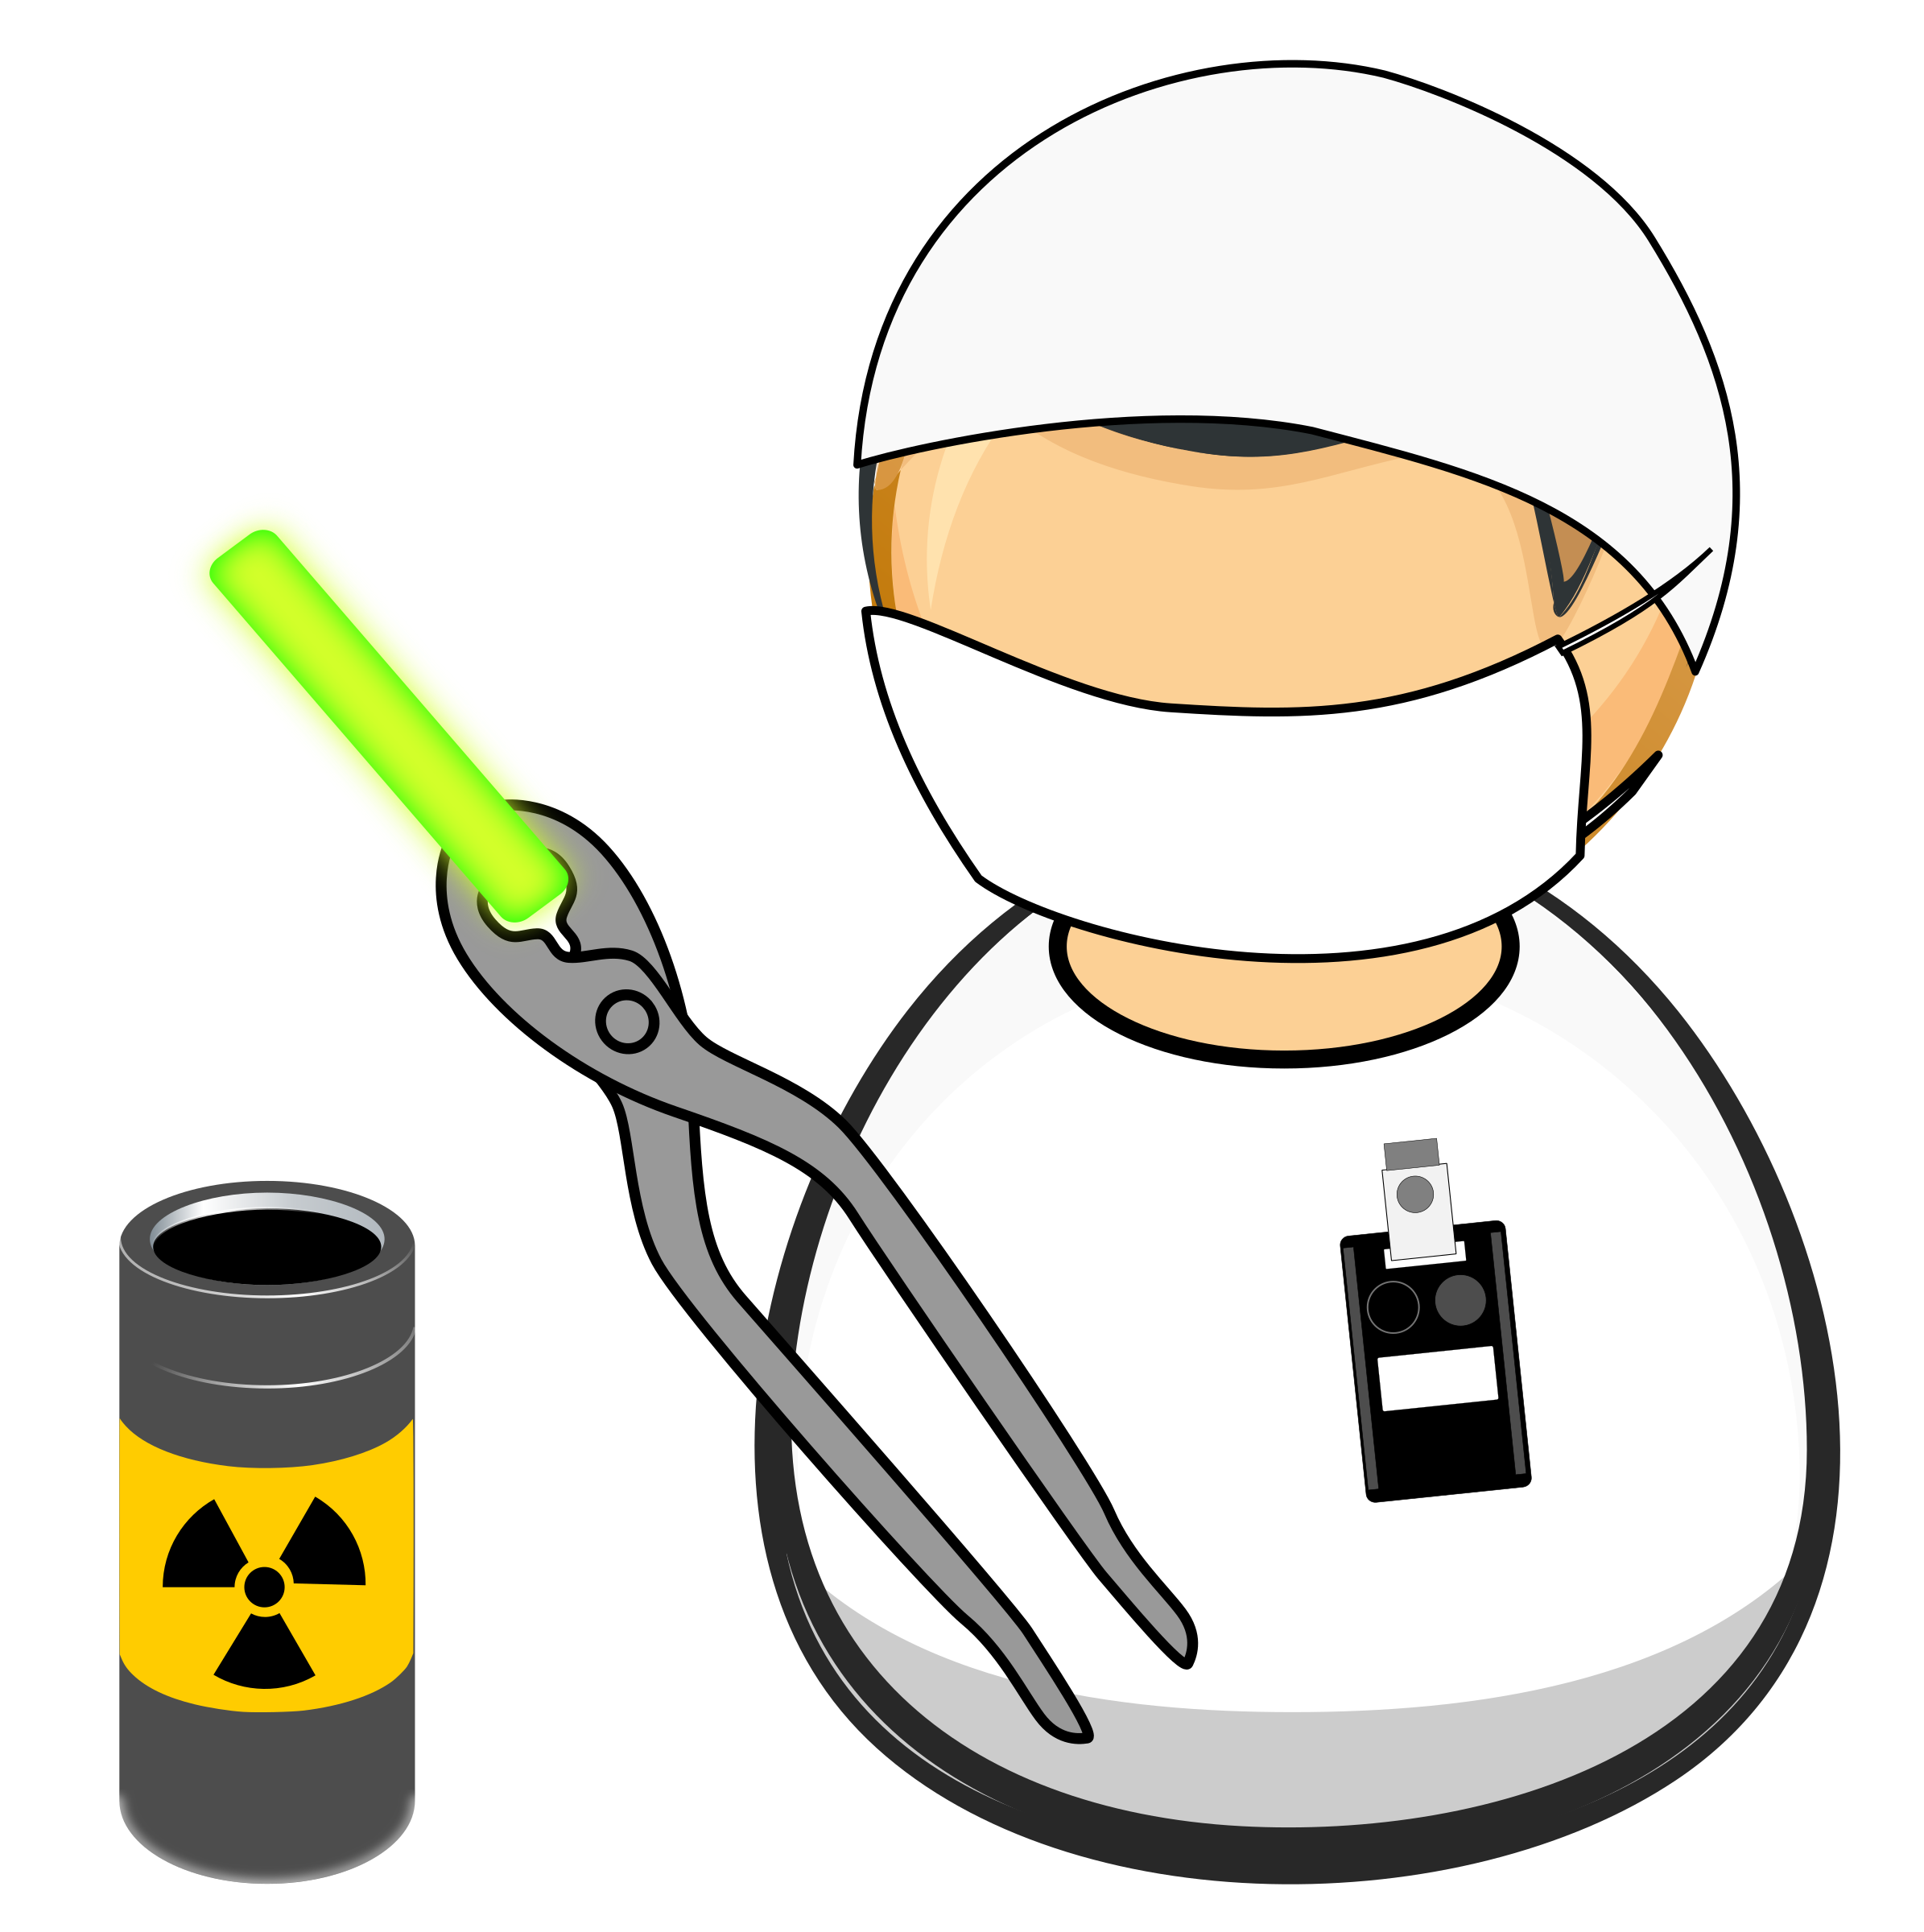 Nuclear facility icons png. Worker vector transparent image free